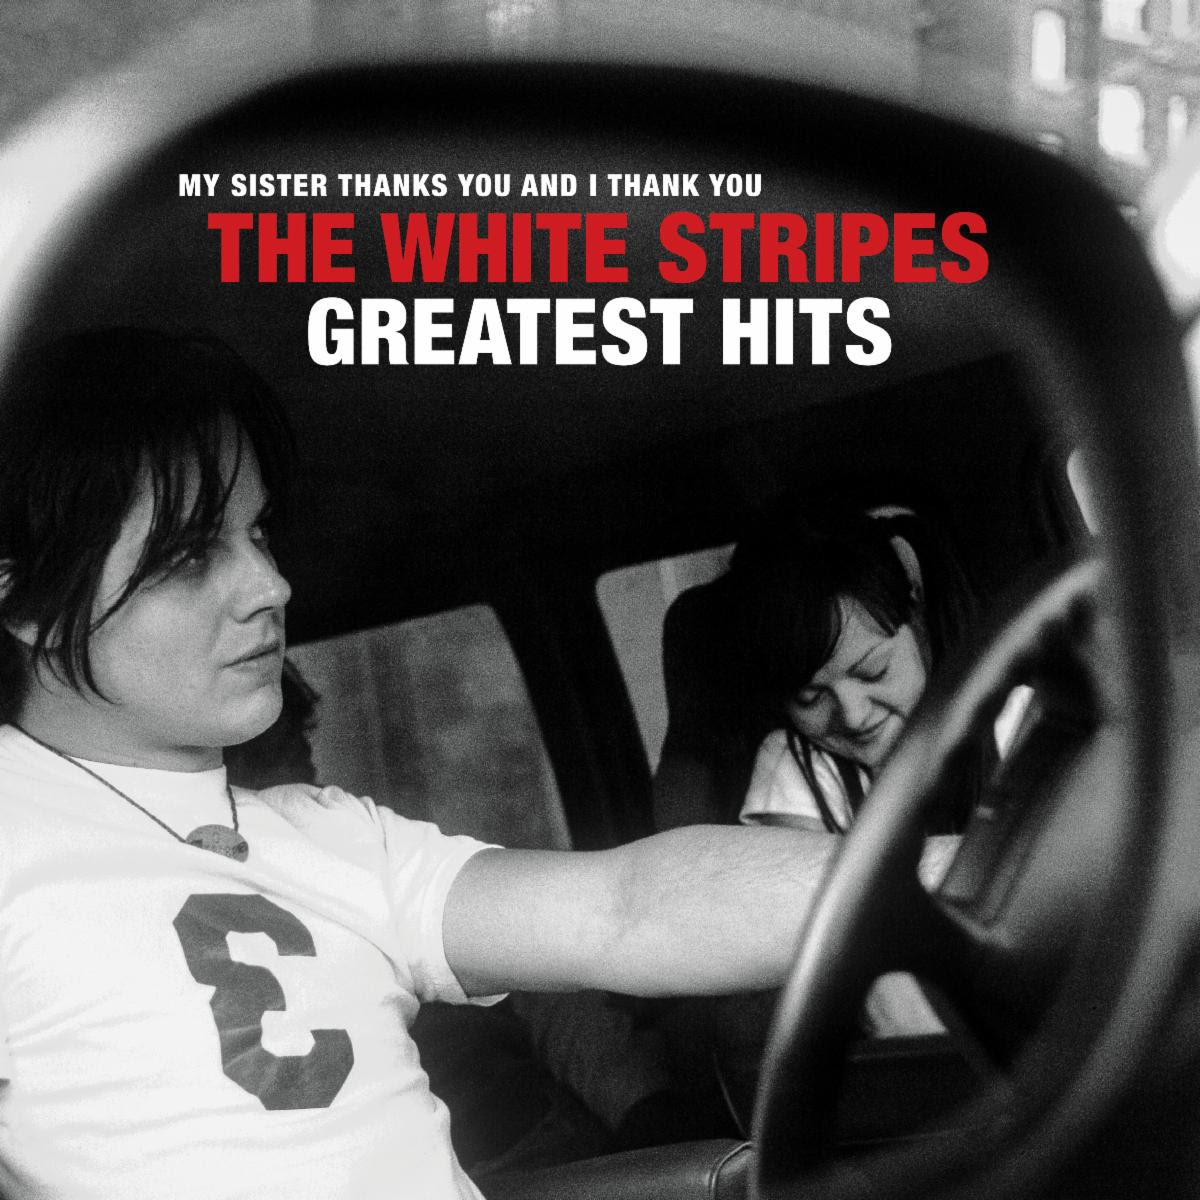 the white stripes greatest hits album cover artwork